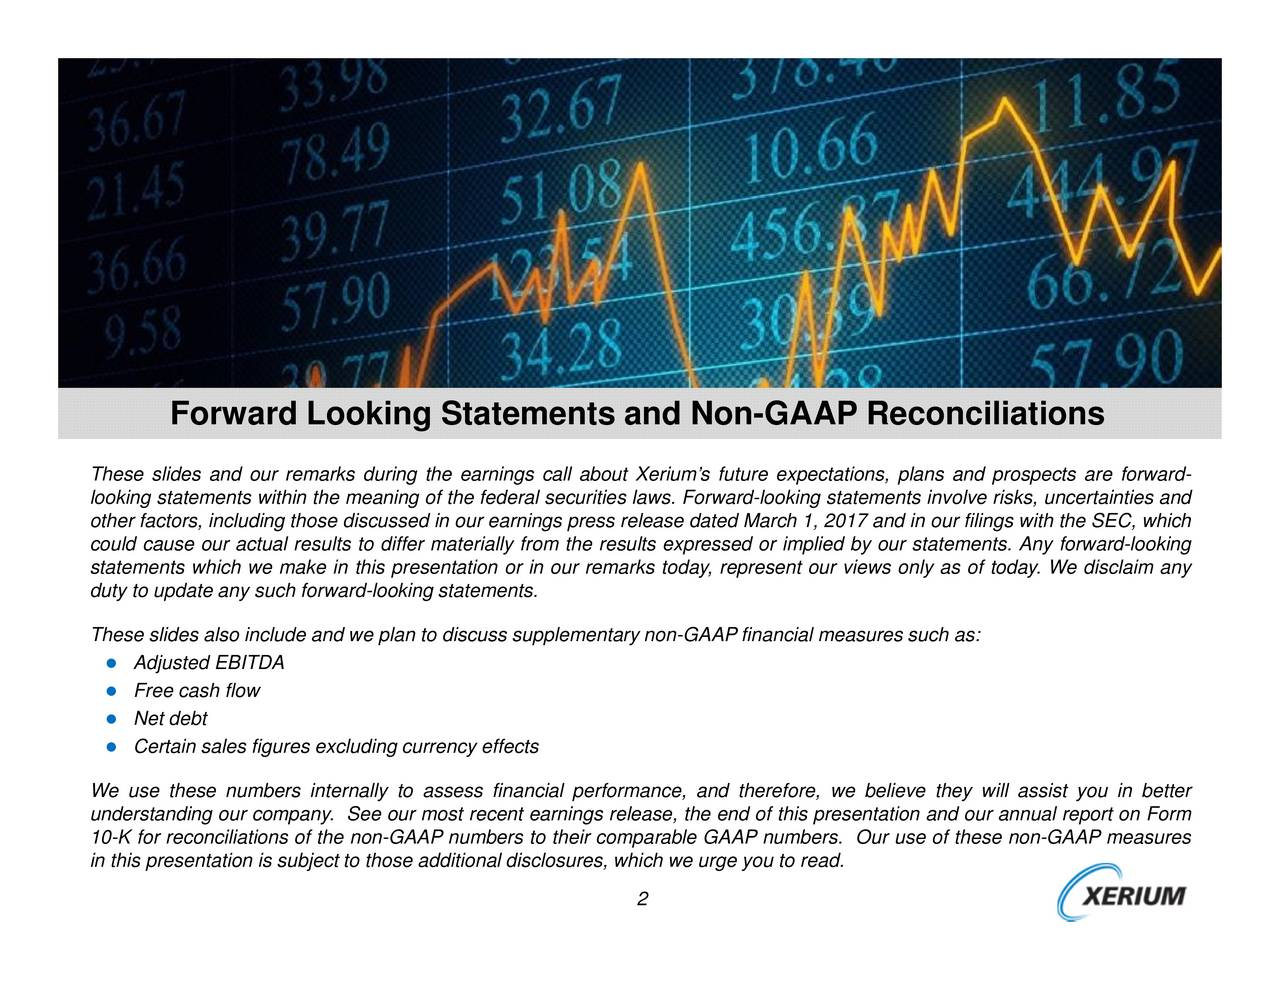 ions AP financial measures such as: day, represent our views only as of today. We disclaim anywill assist you in better iums future expectations, plans and prospects are forward-sentation and our annual report on Form ease dated March 1, 2017 and in our filings with the SEC, whichof these non-GAAP measures lts expressed or implied by our statements. Any forward-looking s laws. Forward-looking statements involve risks, uncertaintie Forward Looking Statements and Non-GAAP Reconciliat AdjFurteecCeItliwsales figures excluding currency effects Theloeotherfadeaysnitewdachuwsyalsclsfisdefanlowaietsratfsdintossrrsuplrmsetotary non-GArlteiflriarea,wahi